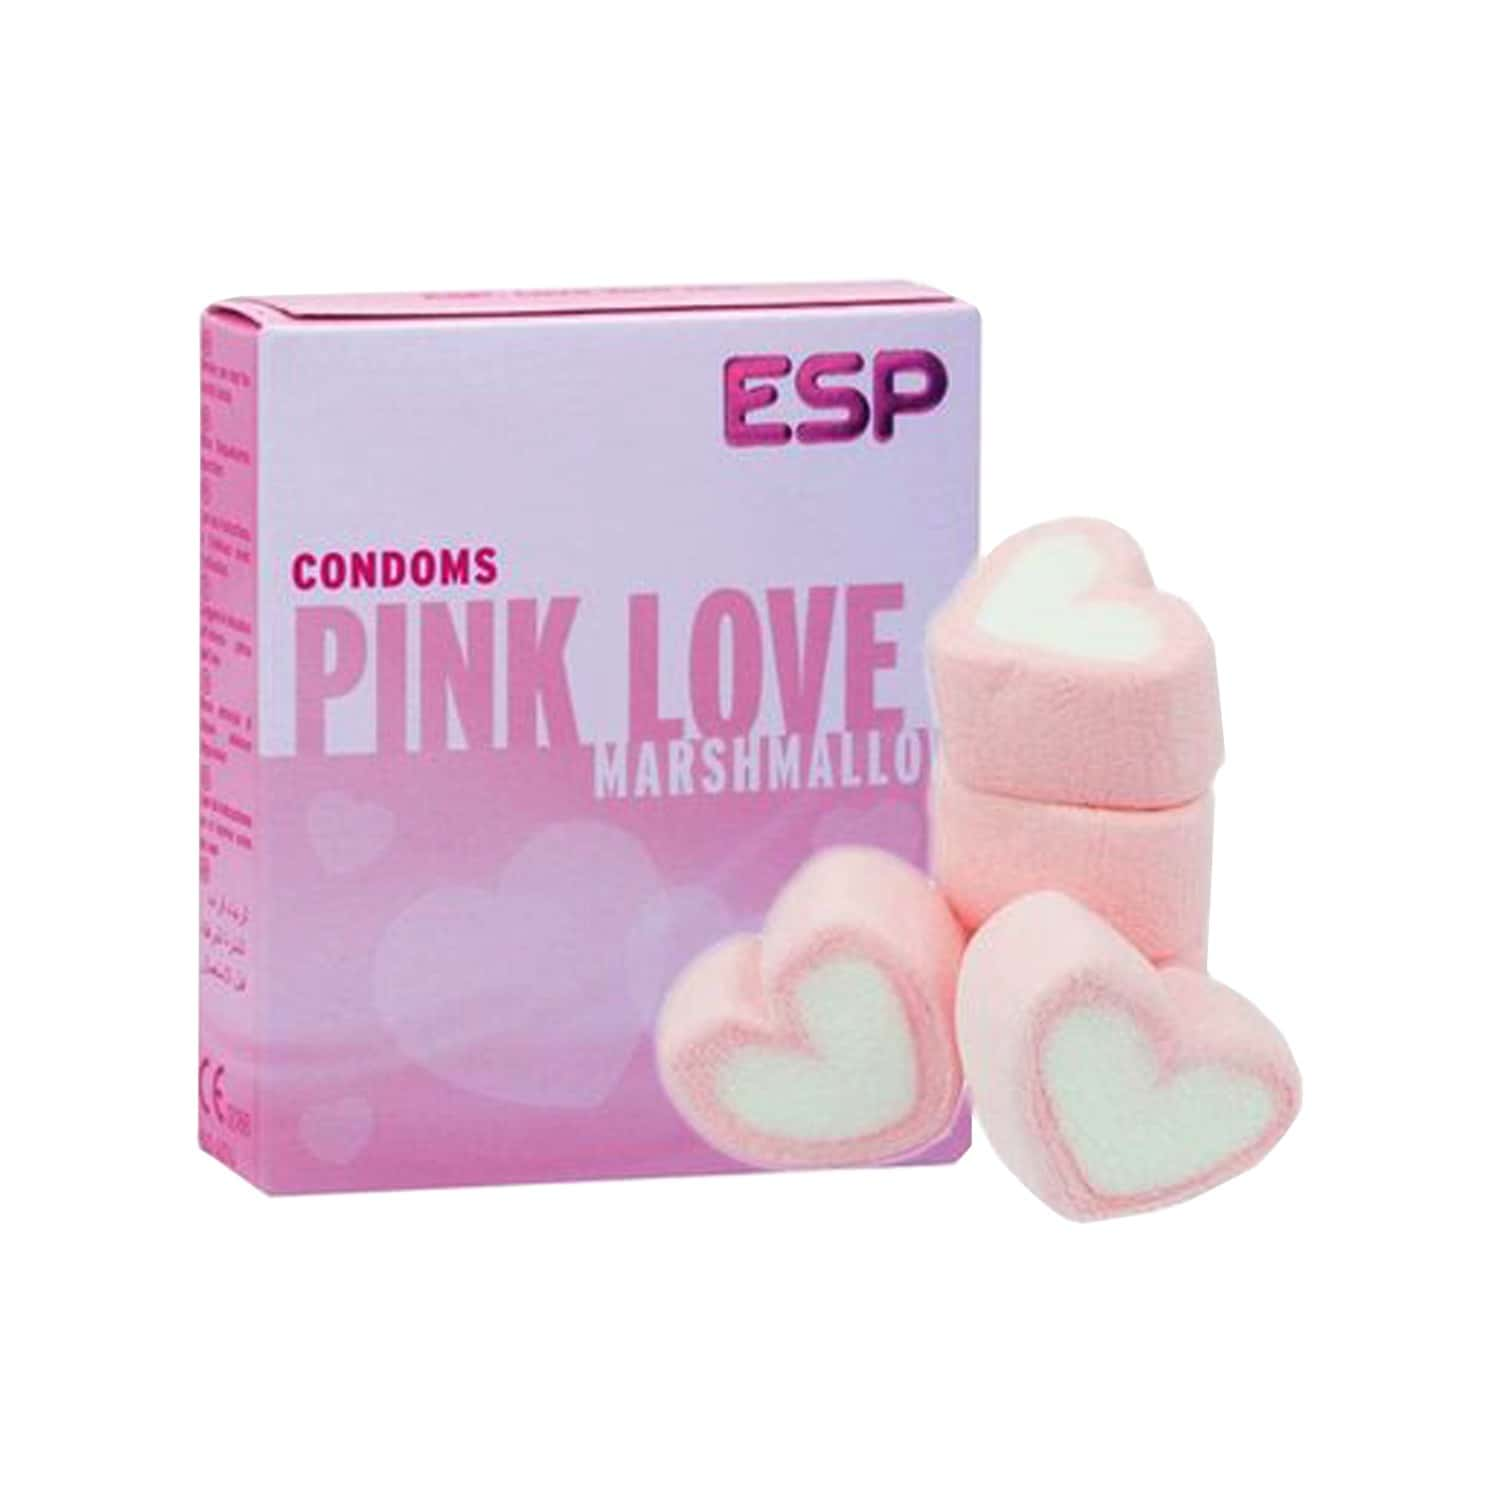 Esp Pink Love Condoms With Marshmallow Flavour- Pack Of 3